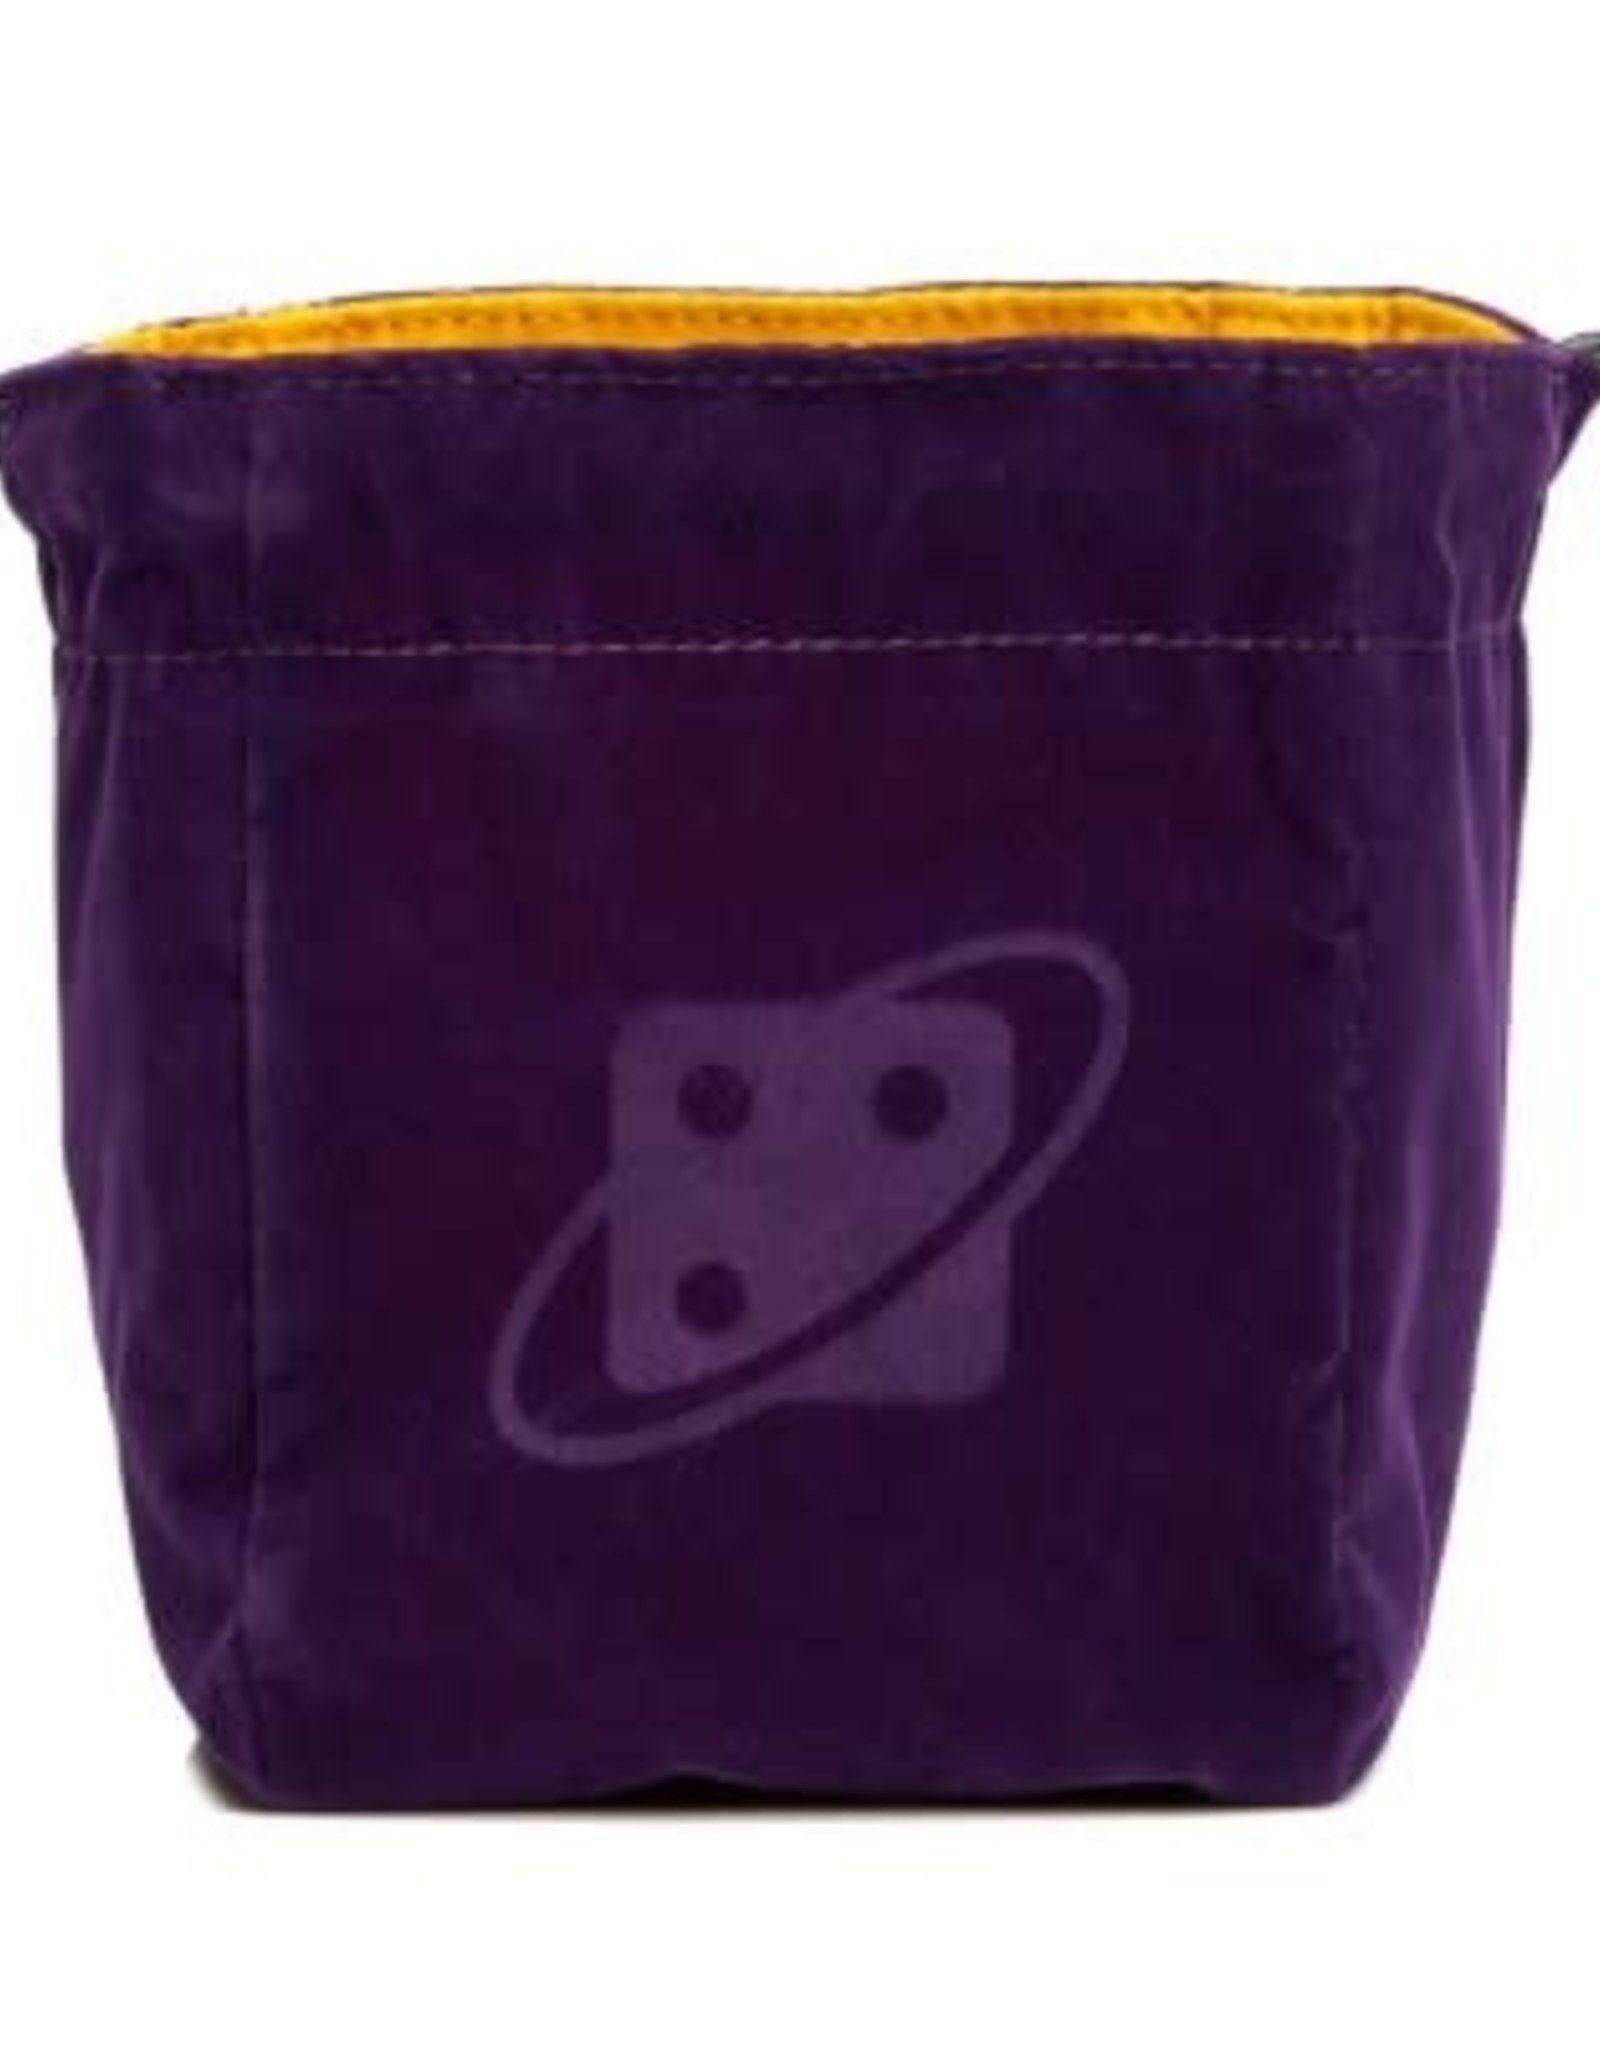 Sirius Dice Premium Reversible Dice Bag: Purple & Gold, Brass Clasp